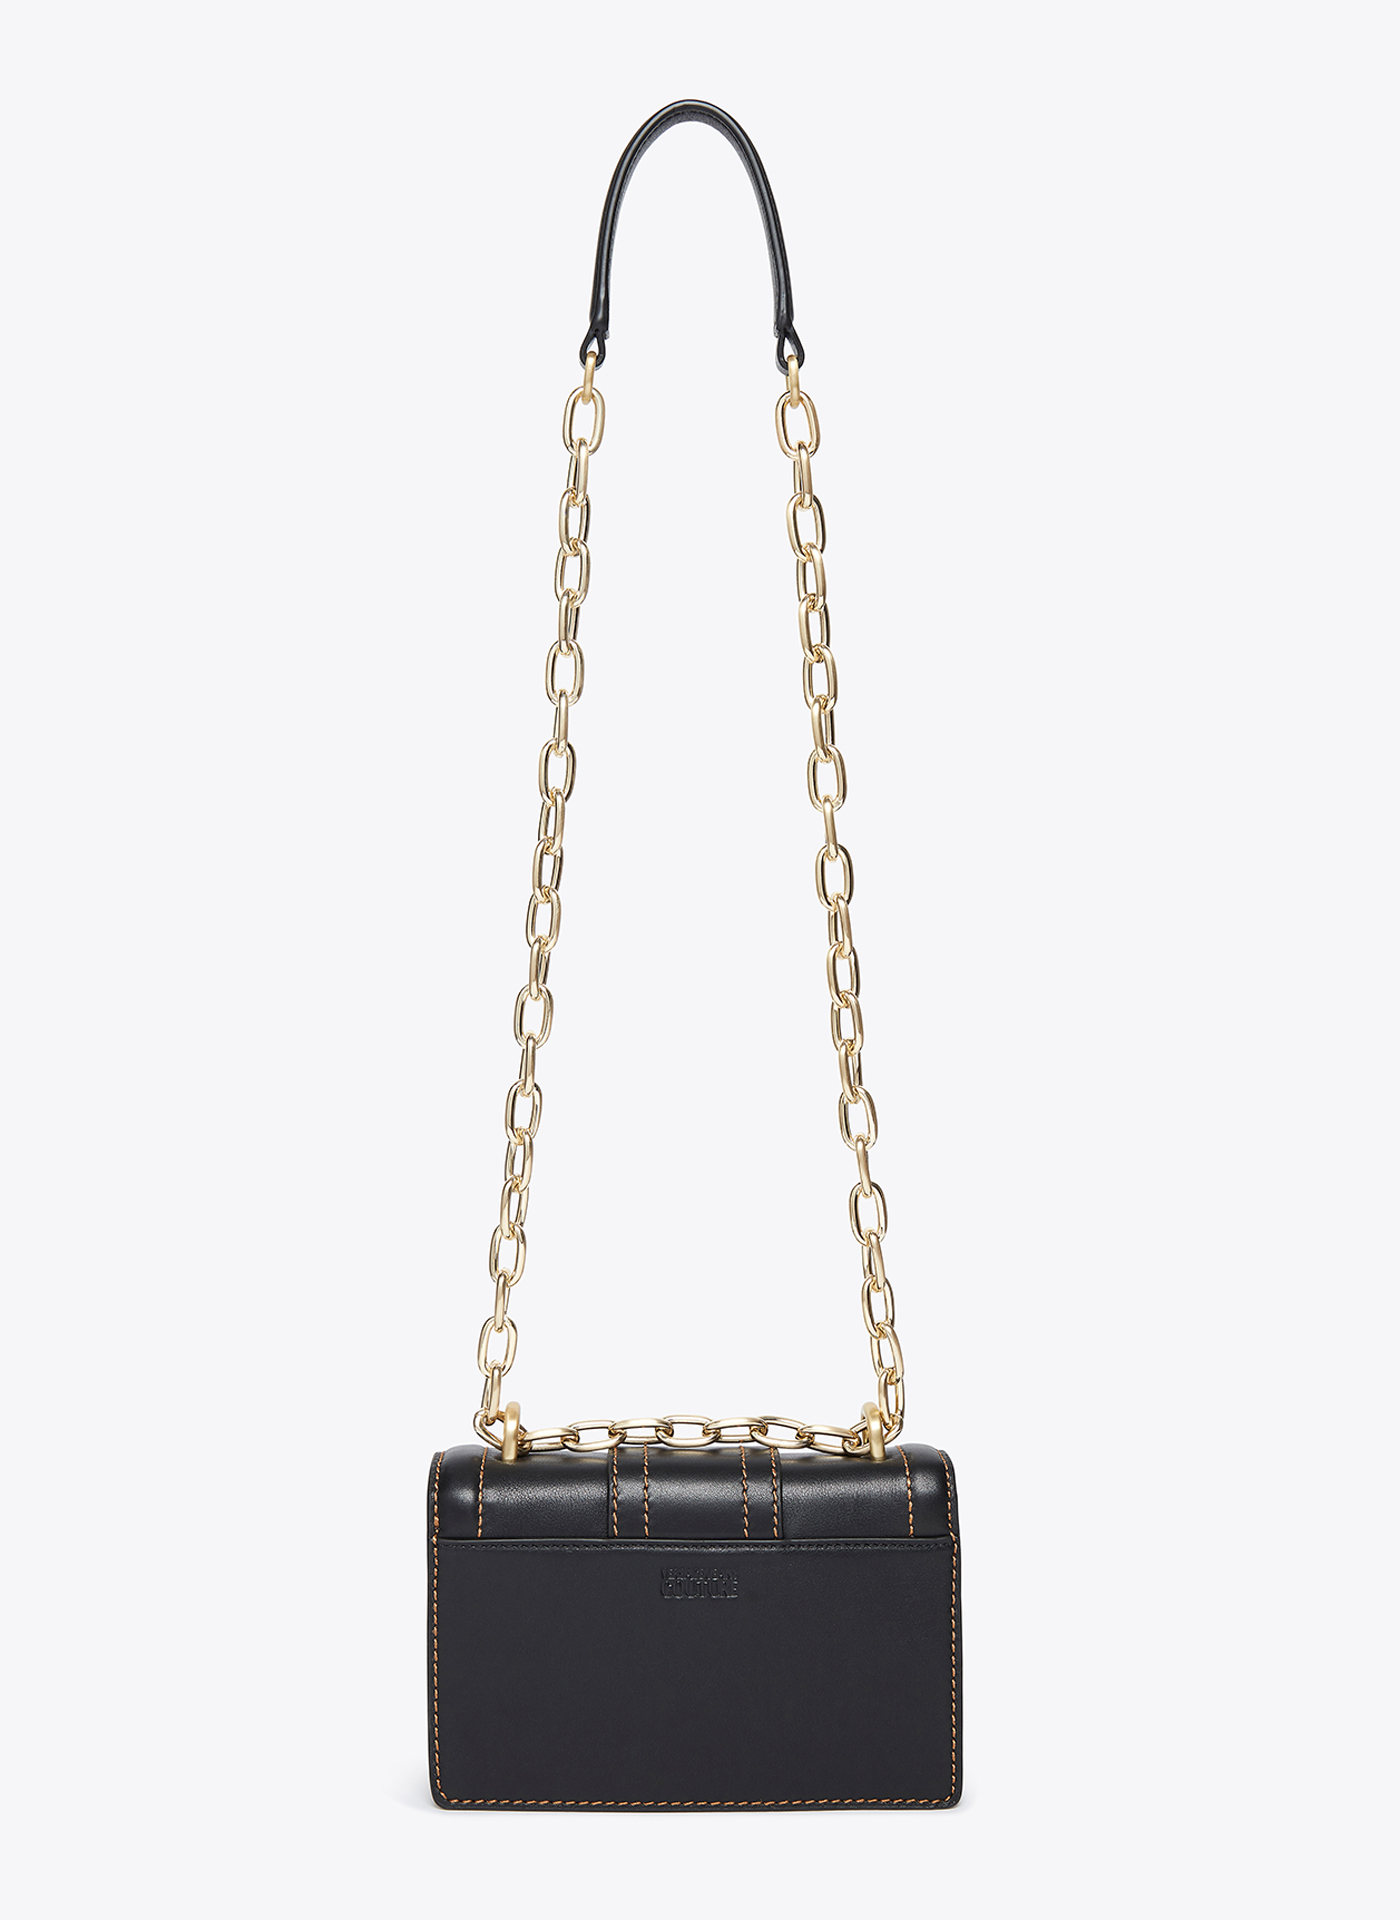 black and gold versace handbag from the back